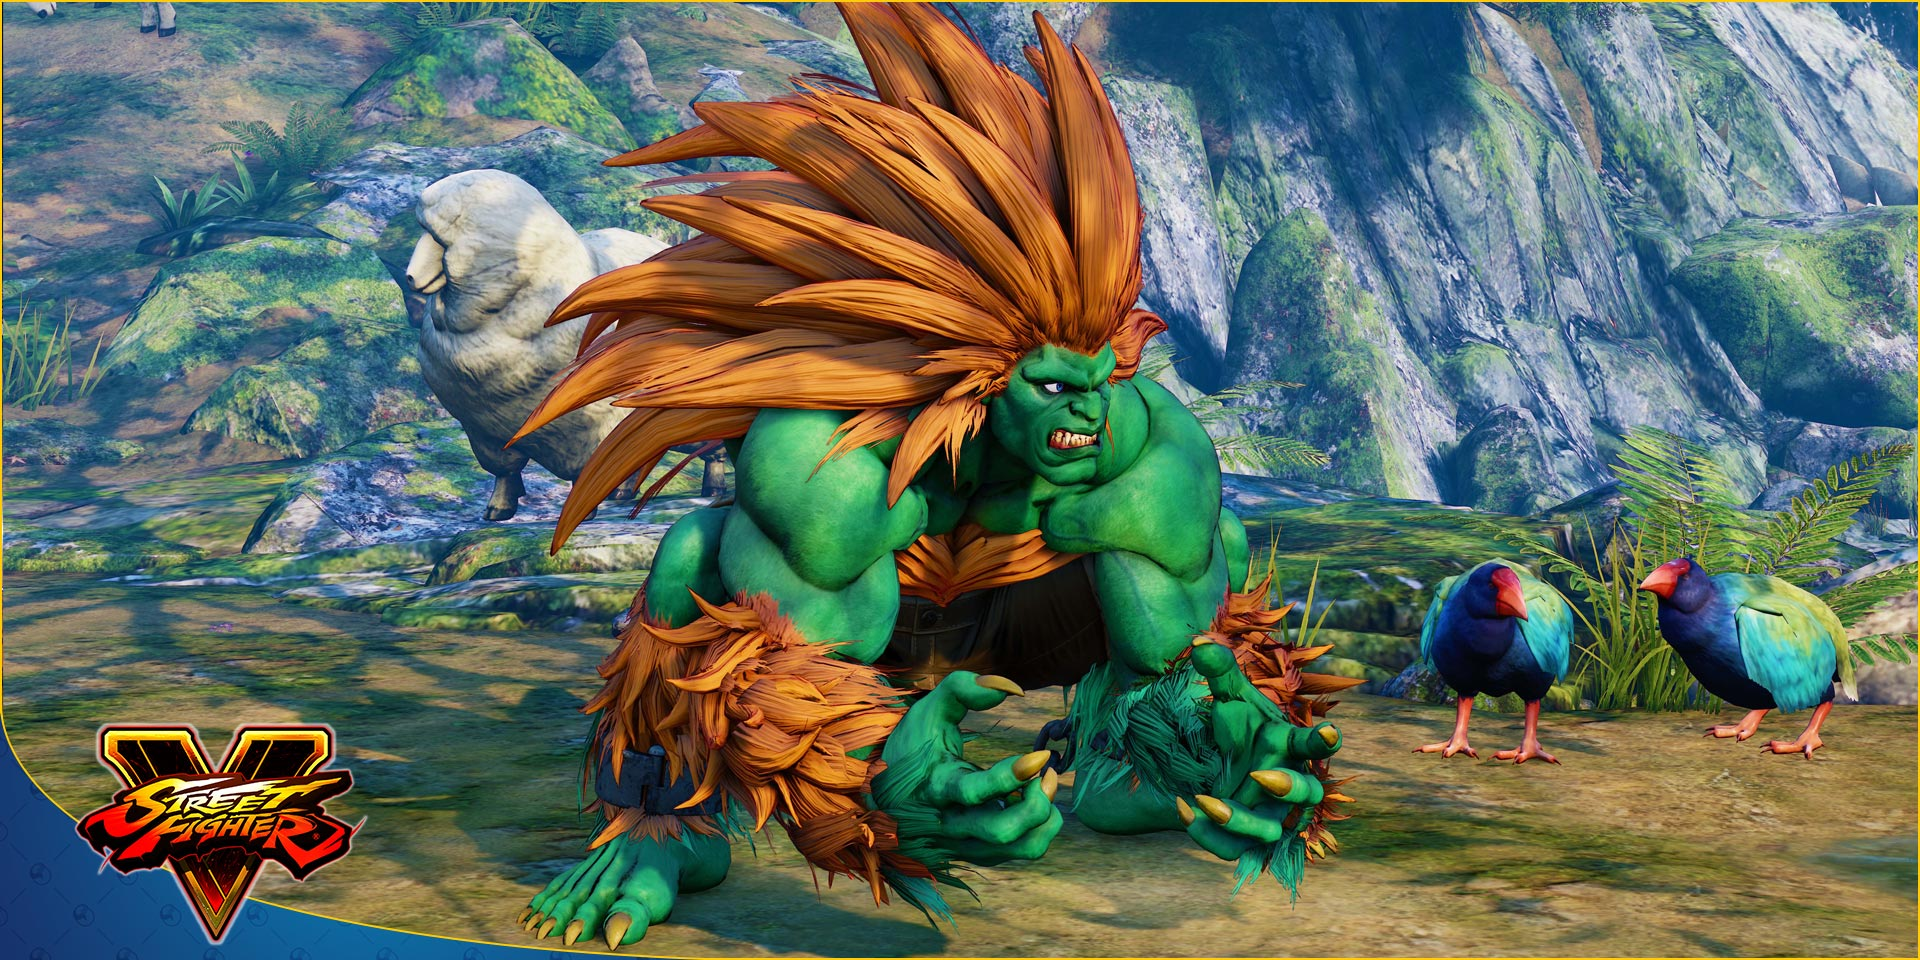 Blanka in Street Fighter 5: Arcade Edition 1 out of 11 image gallery